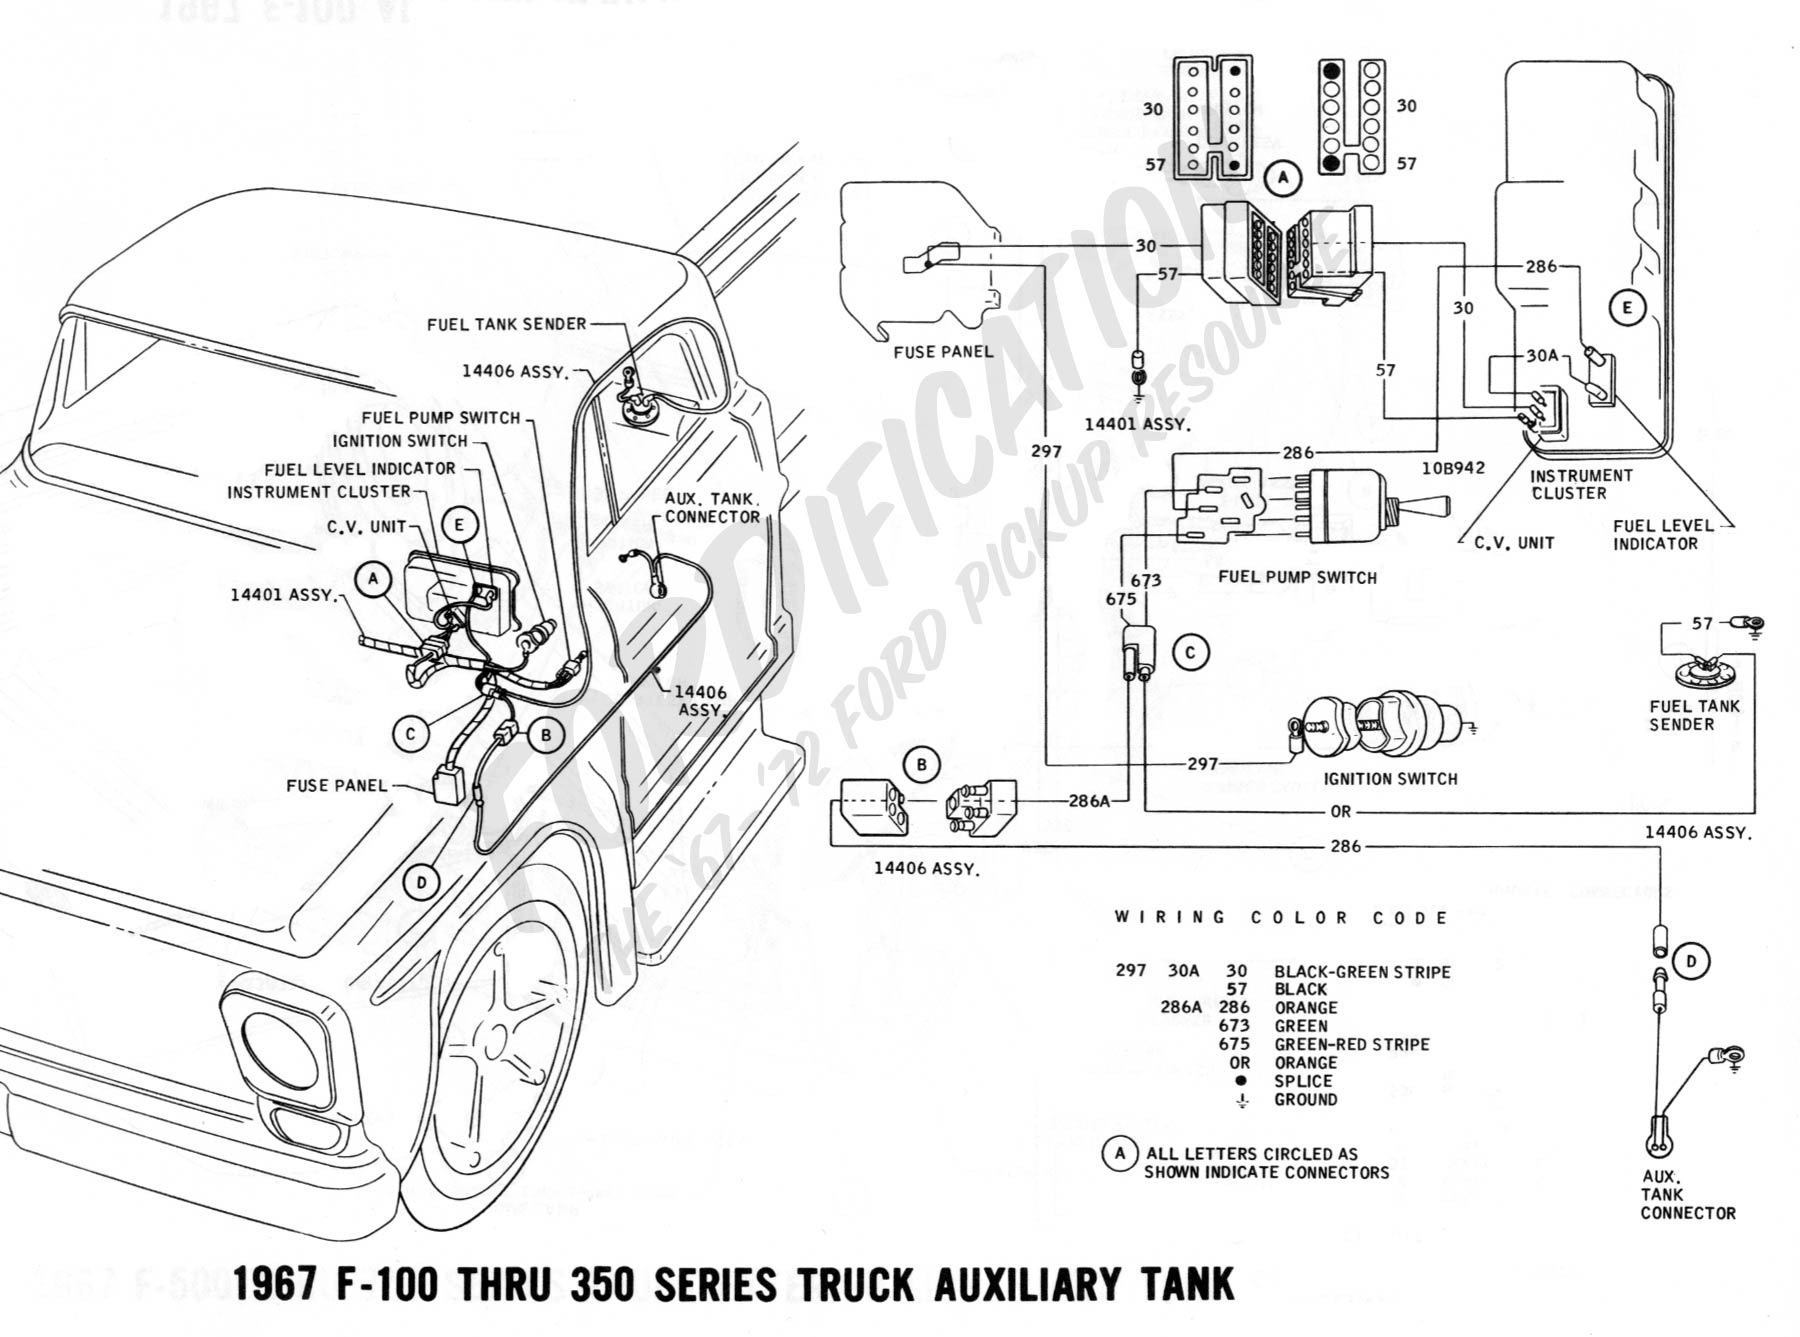 Schematics h on 1997 ford f350 steering column diagram